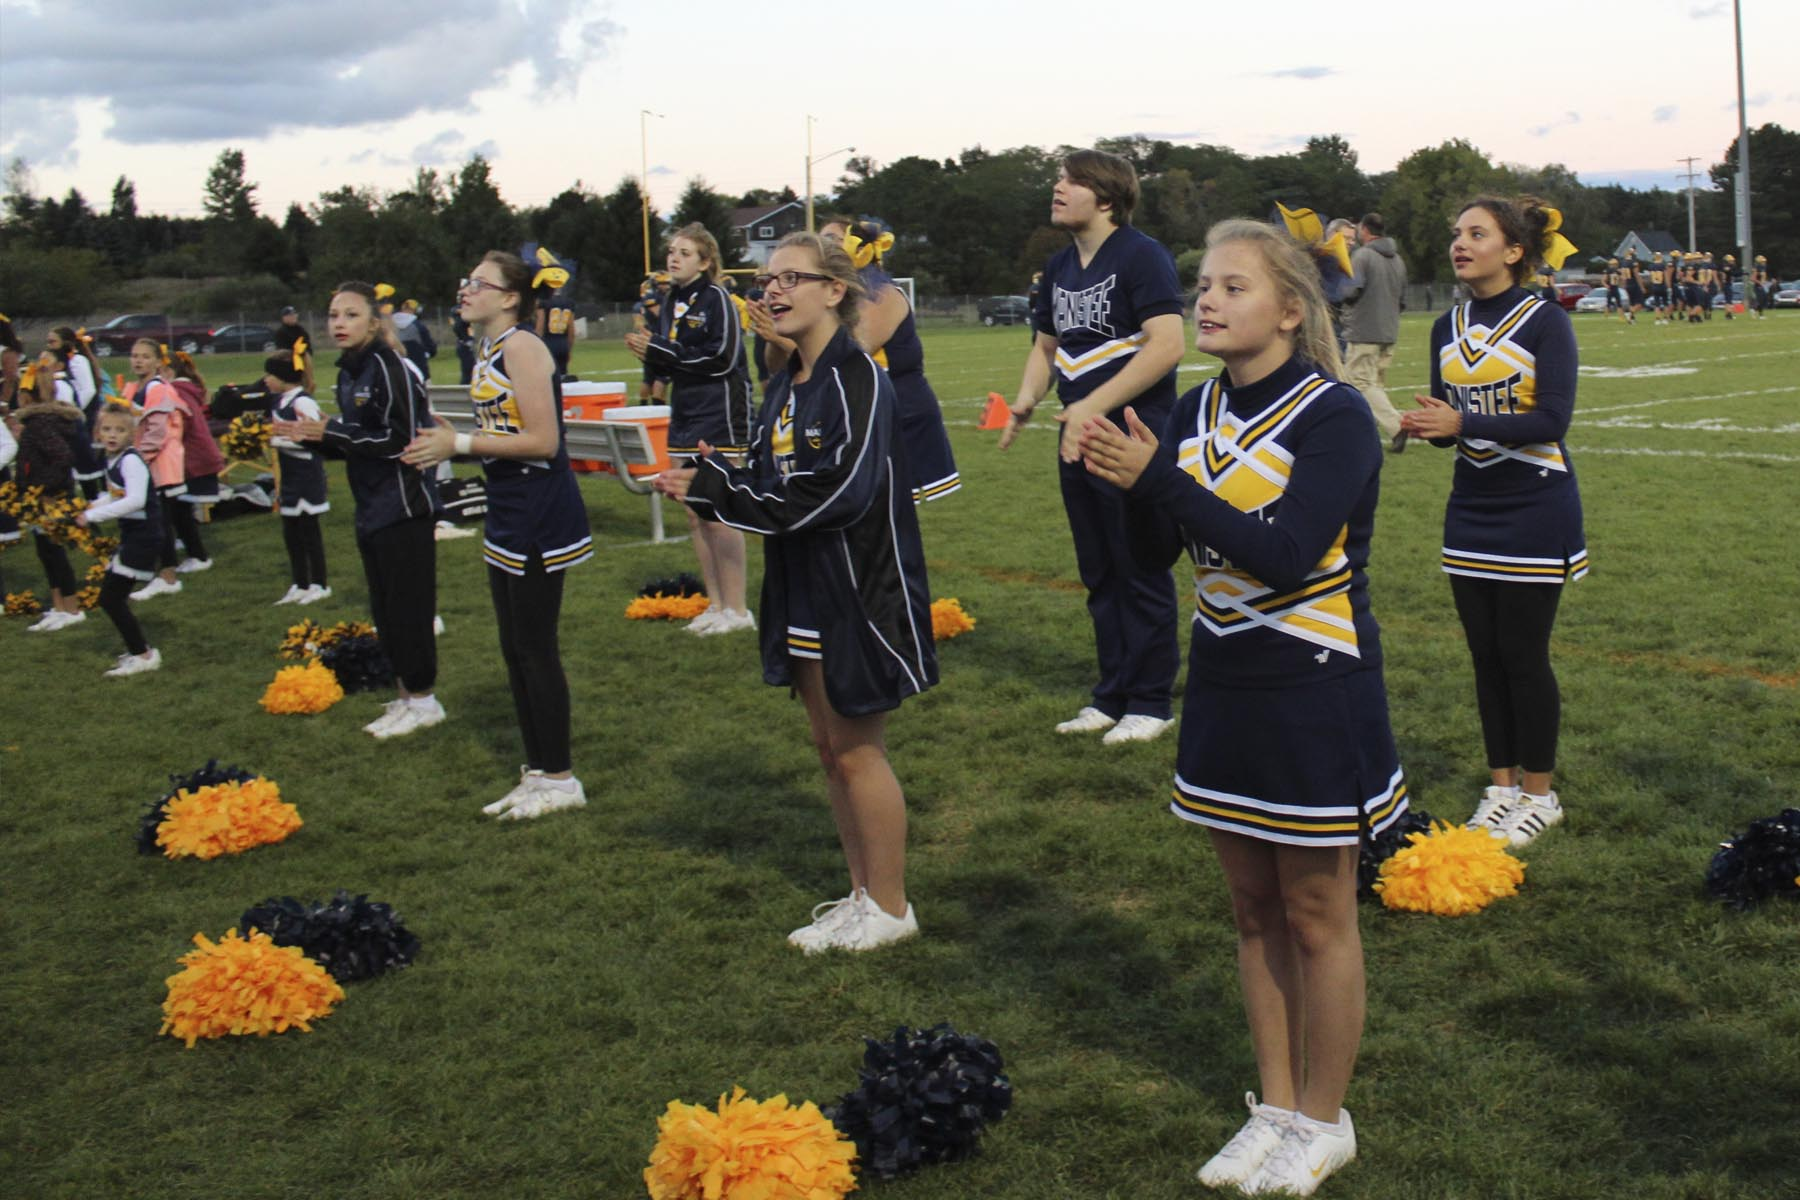 MMHS students cheering at High School football game